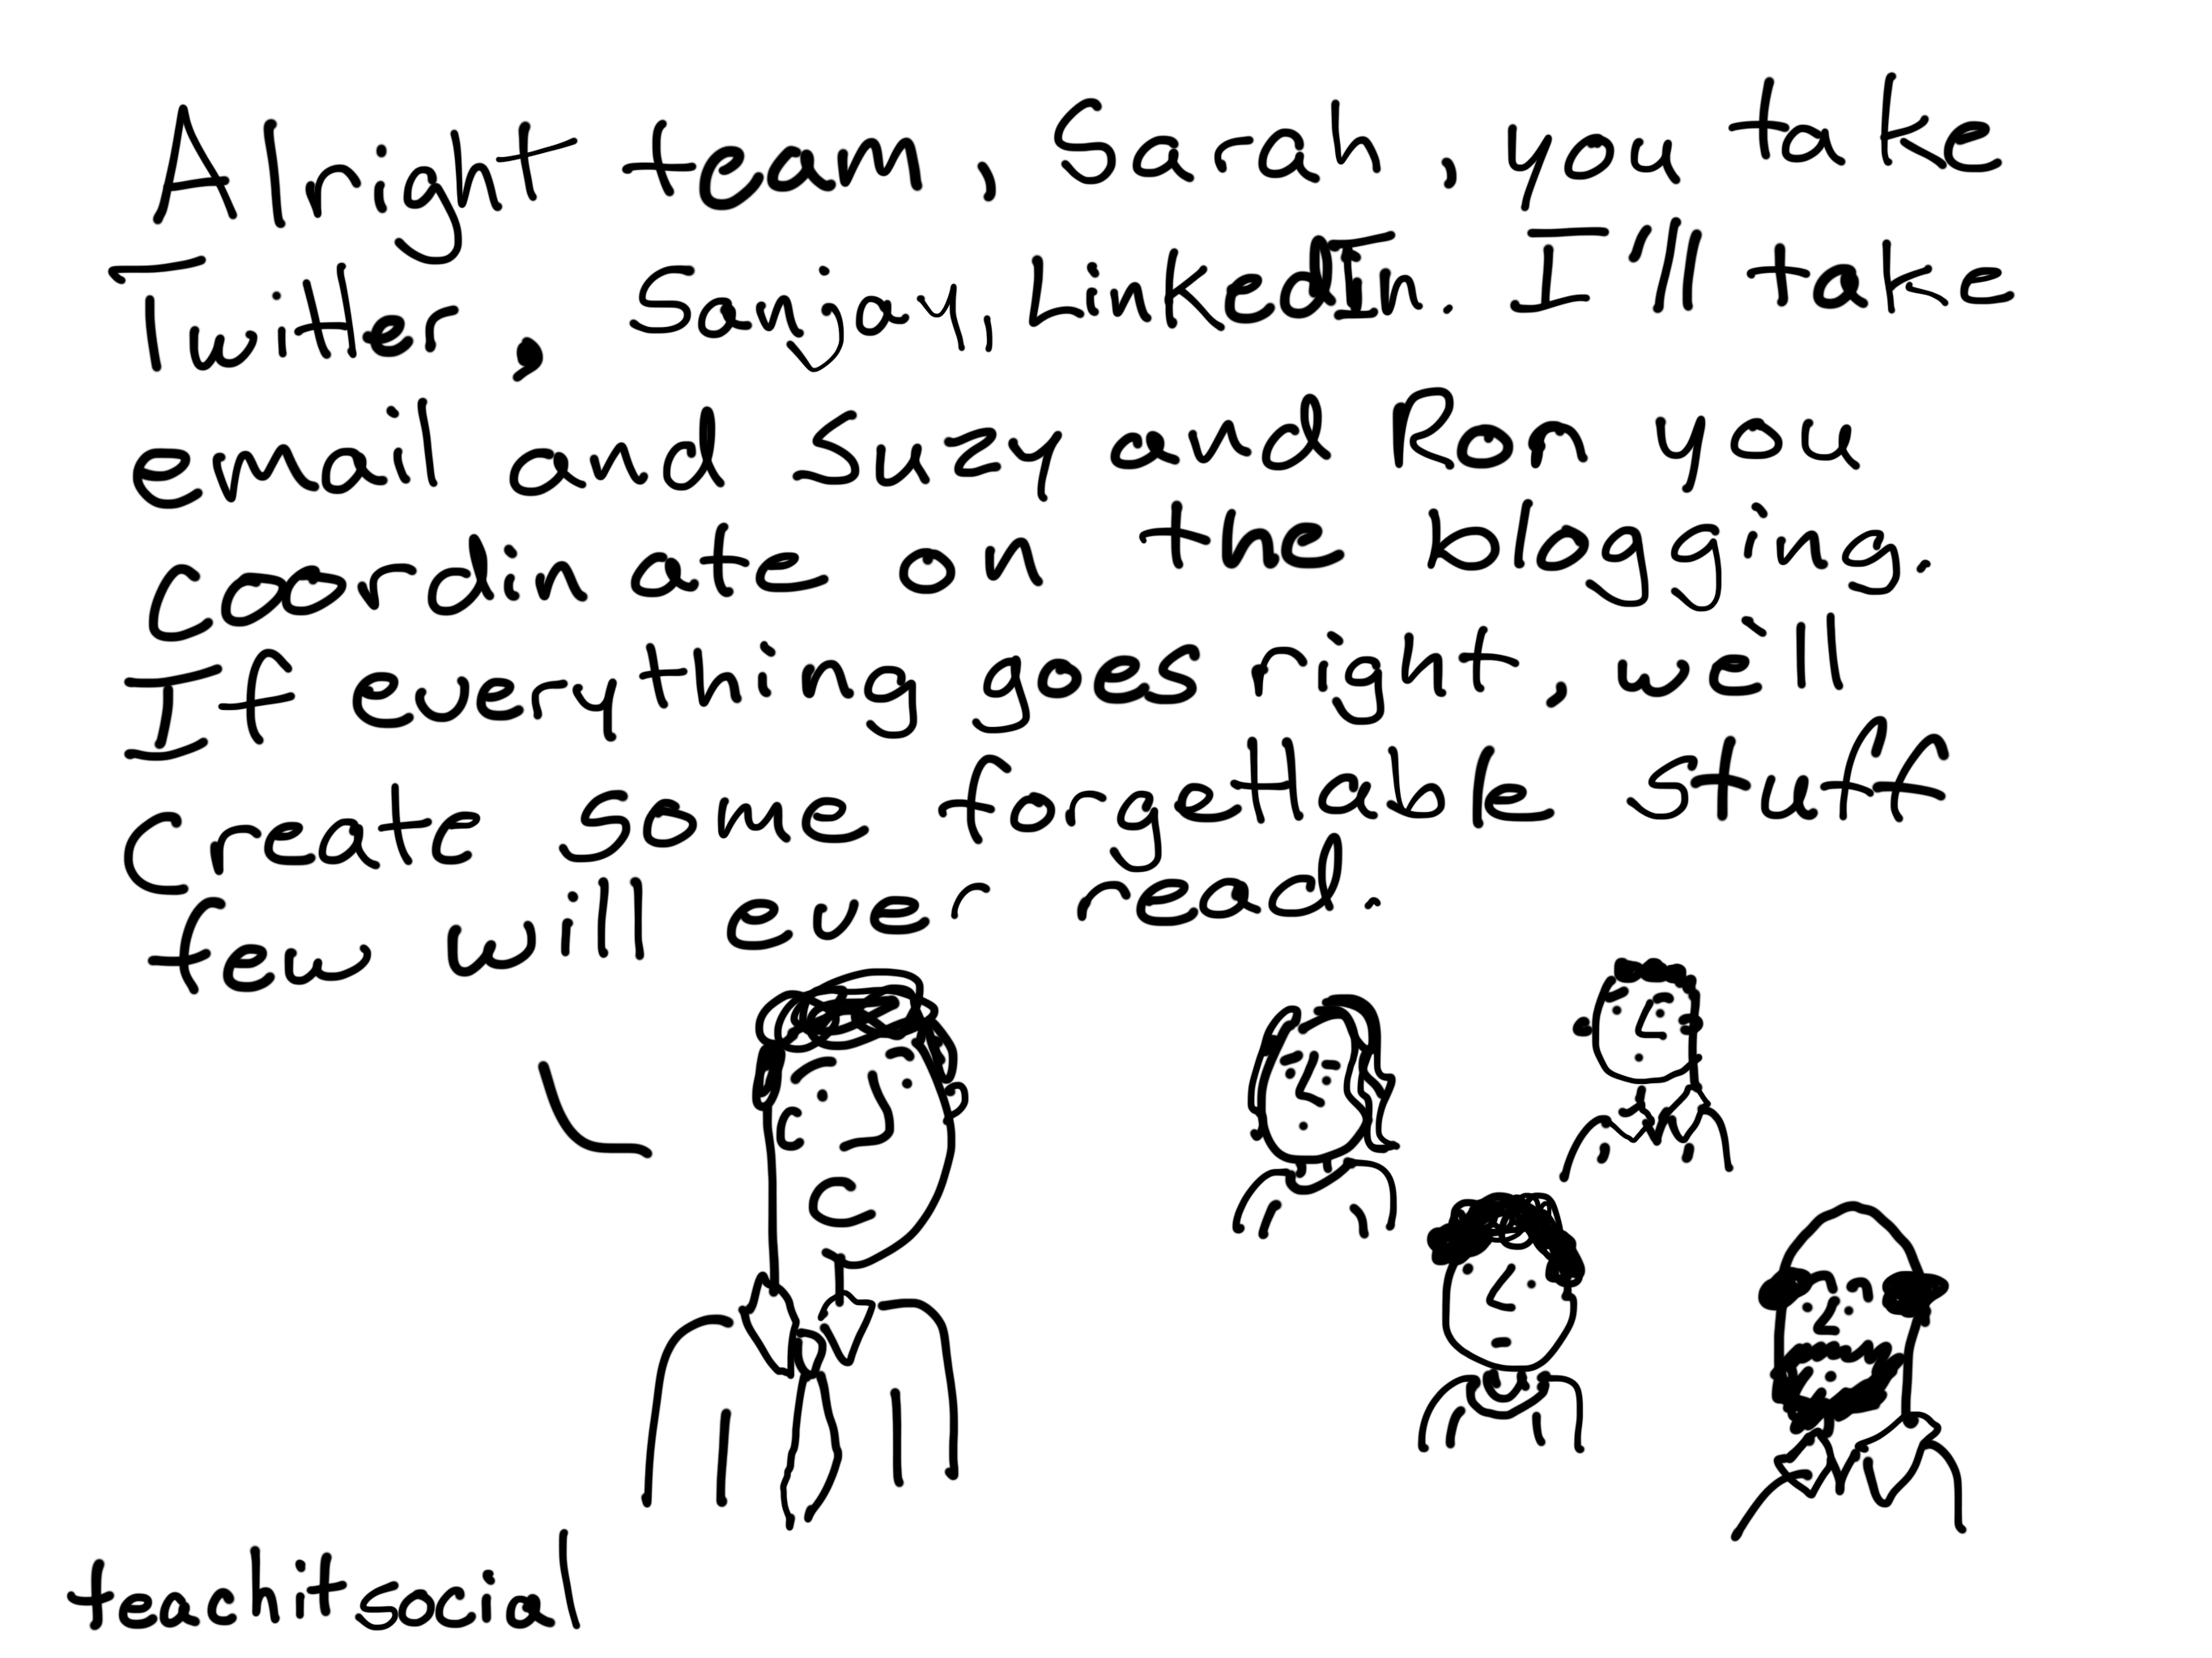 Alright team, Sarah you take Twitter, Sanjay, LinkedIn. I'll take email and Suzy and Ron you coordinate on the blogging. If everything goes right, we'll generate some forgettable stuff few will ever read.